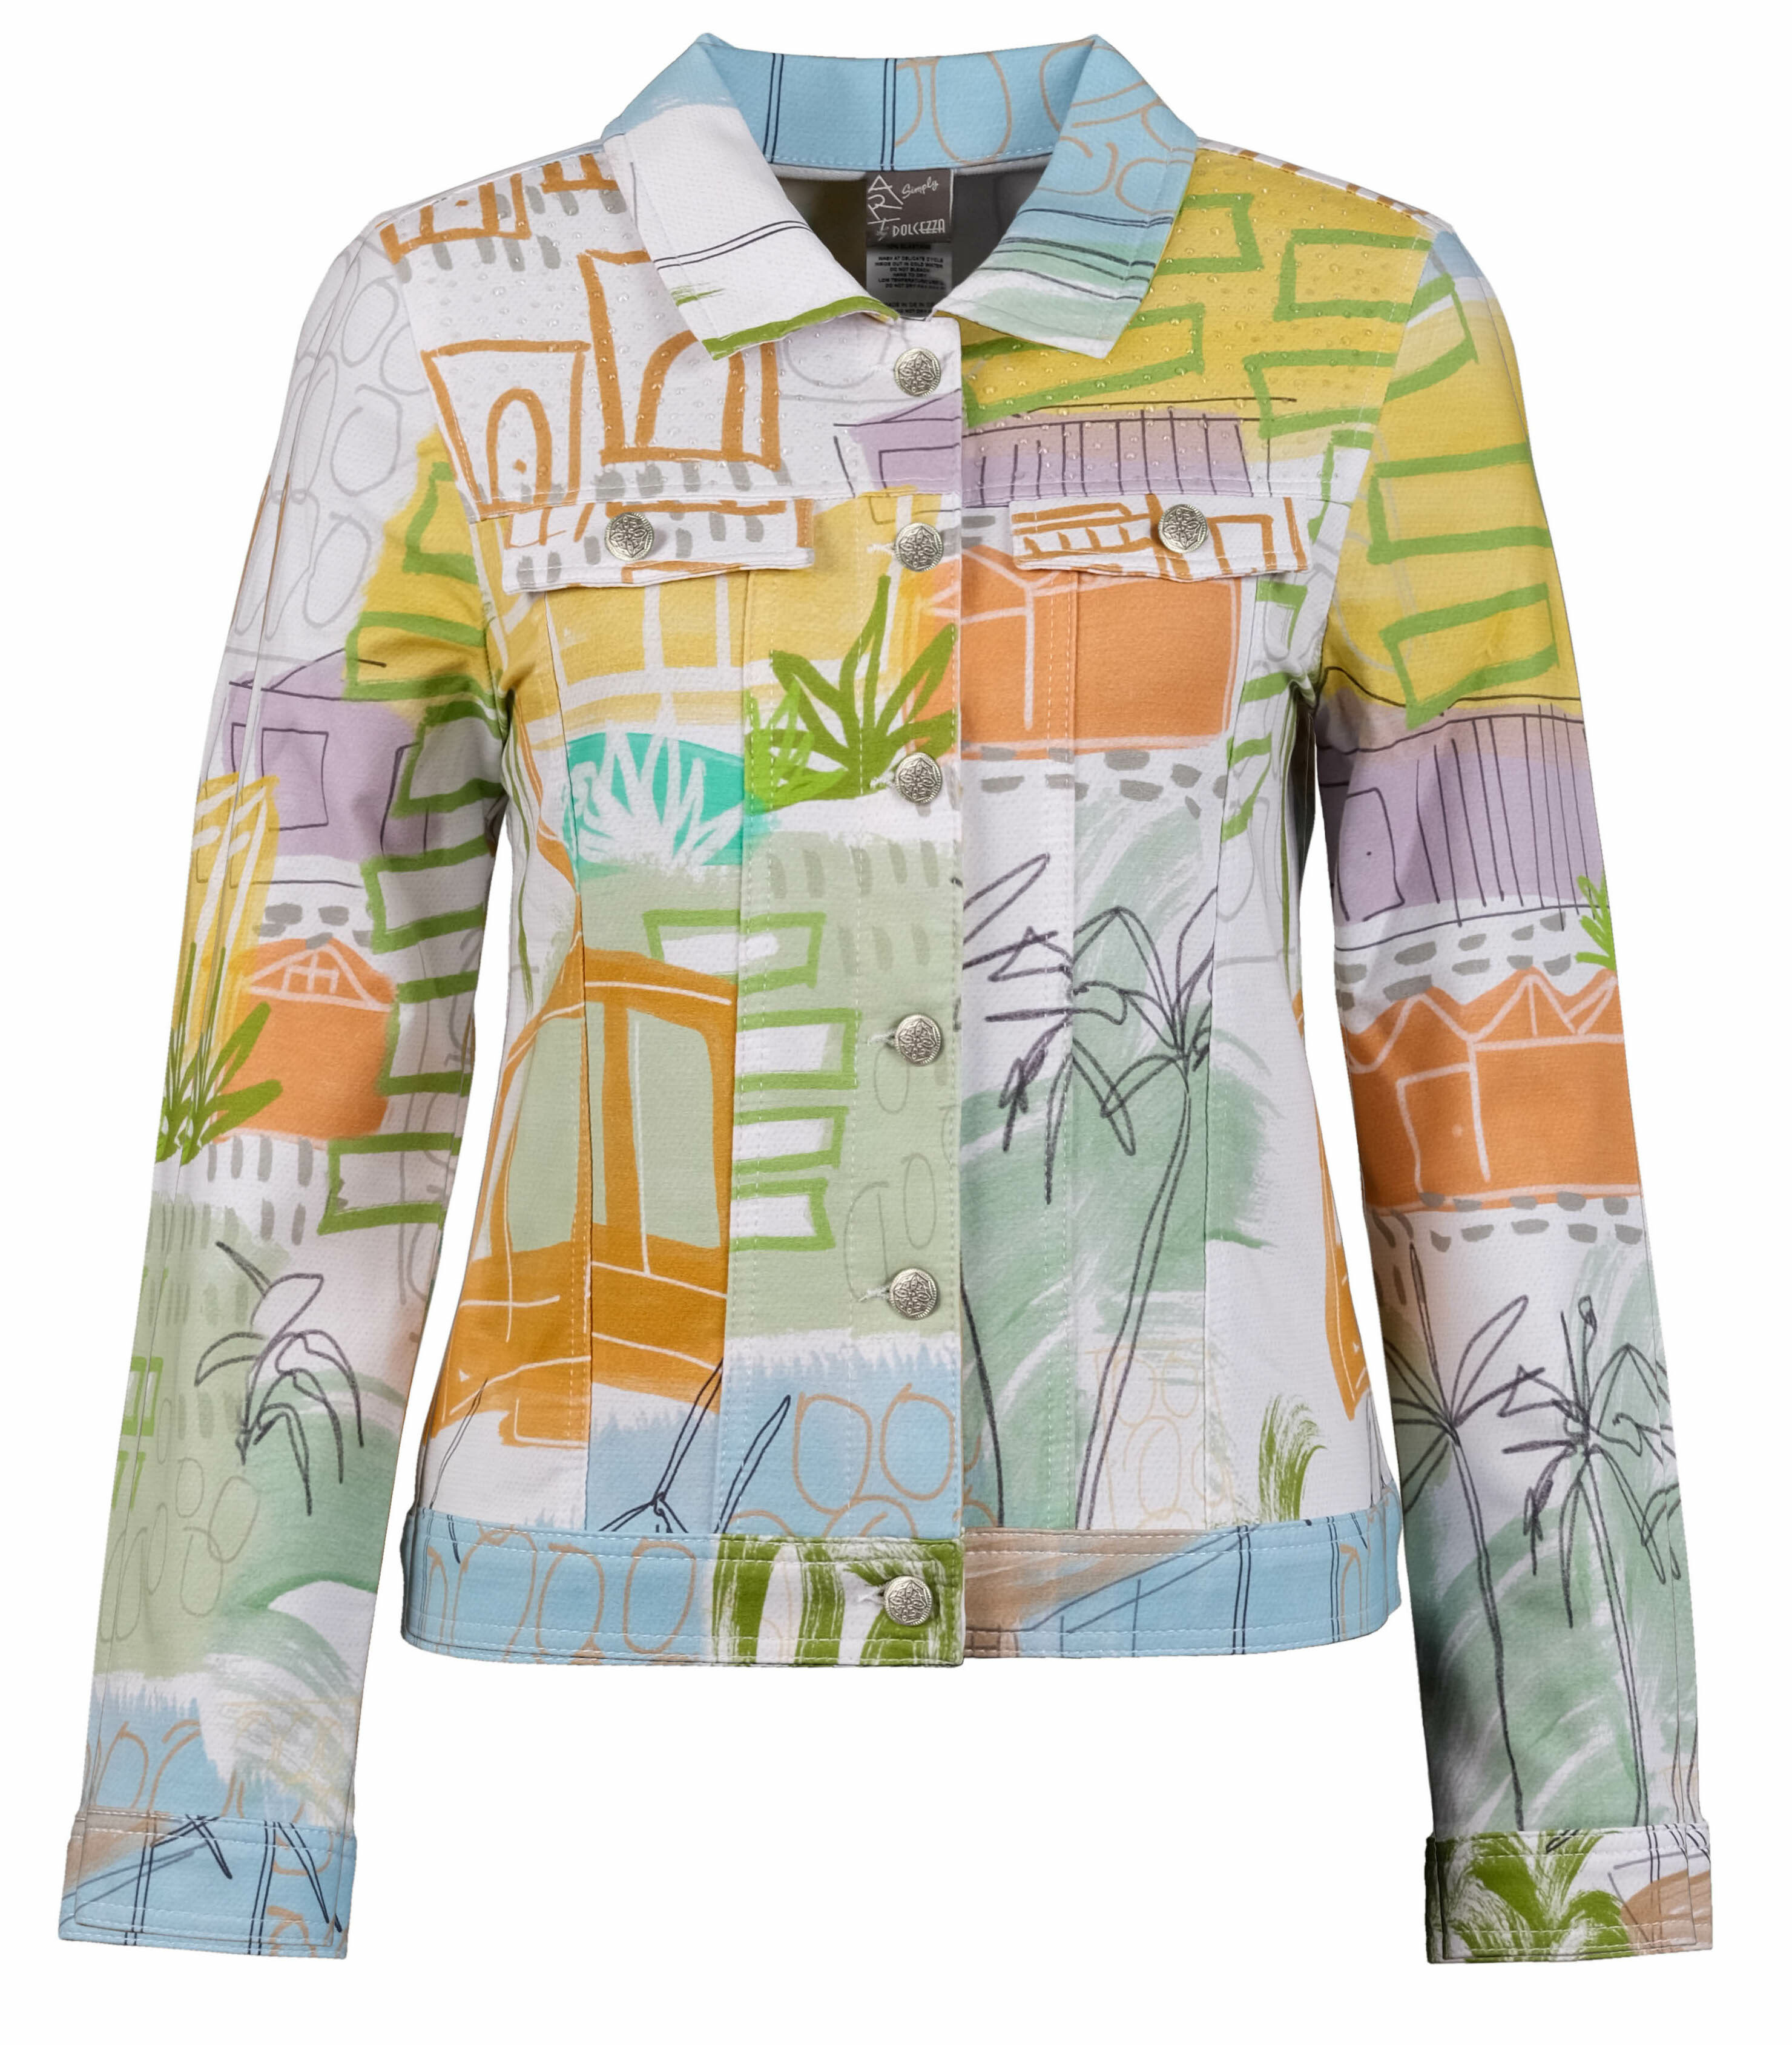 Simply Art Dolcezza: Palm Springs Cityscape Abstract Art Denim Jacket Dolcezza_SimplyArt_20668_N